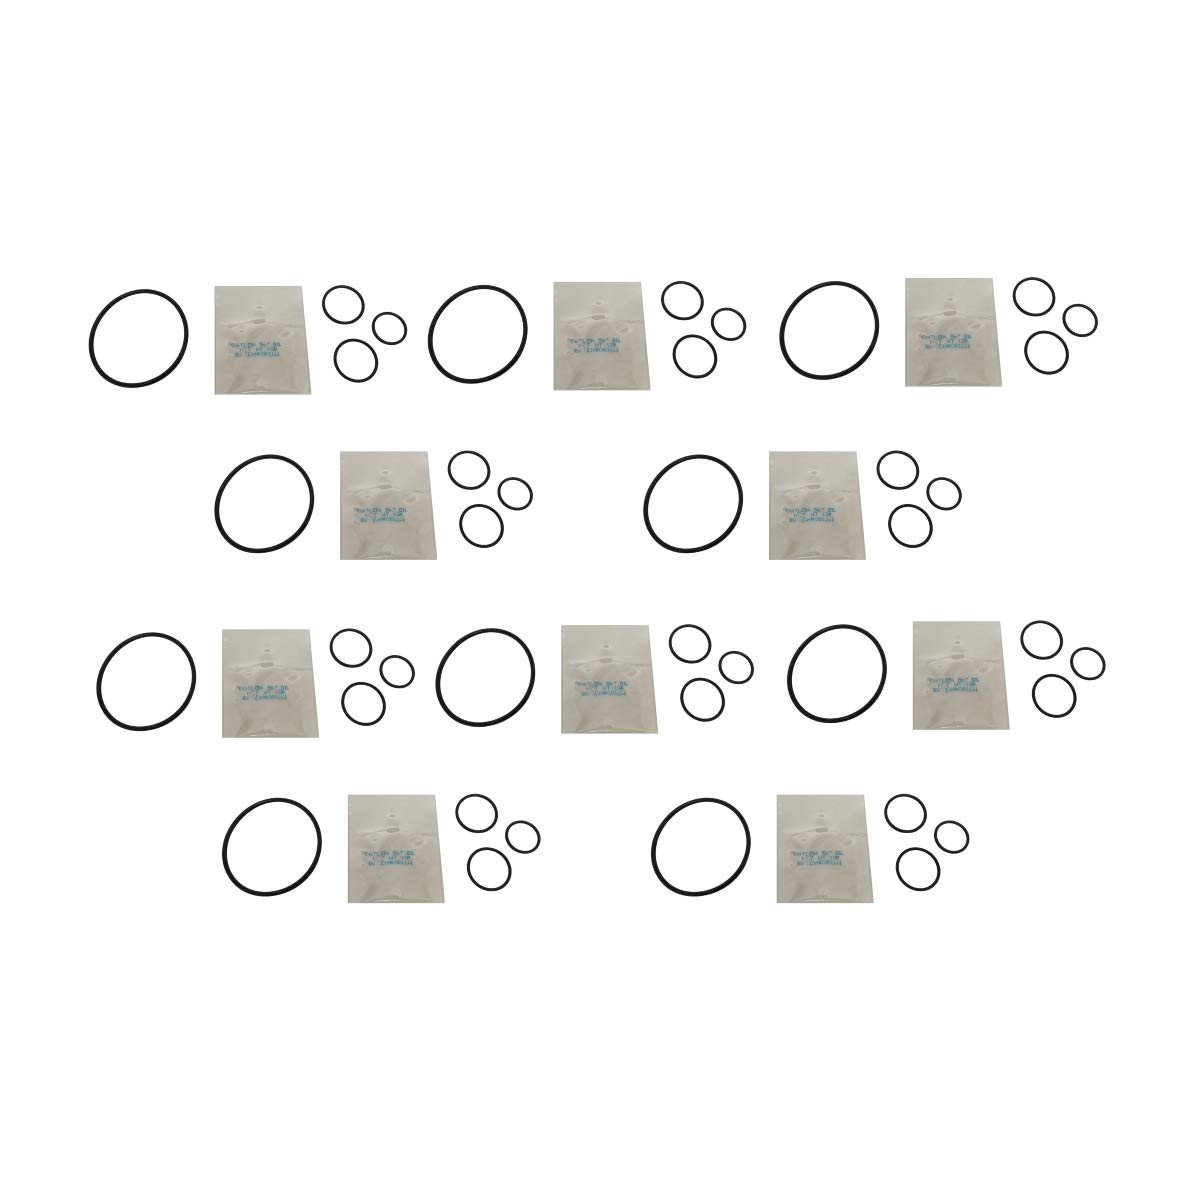 Catlow 2976-10 O-Ring Kit for CTM75 & MCSB75 Breakaways - 10 pack